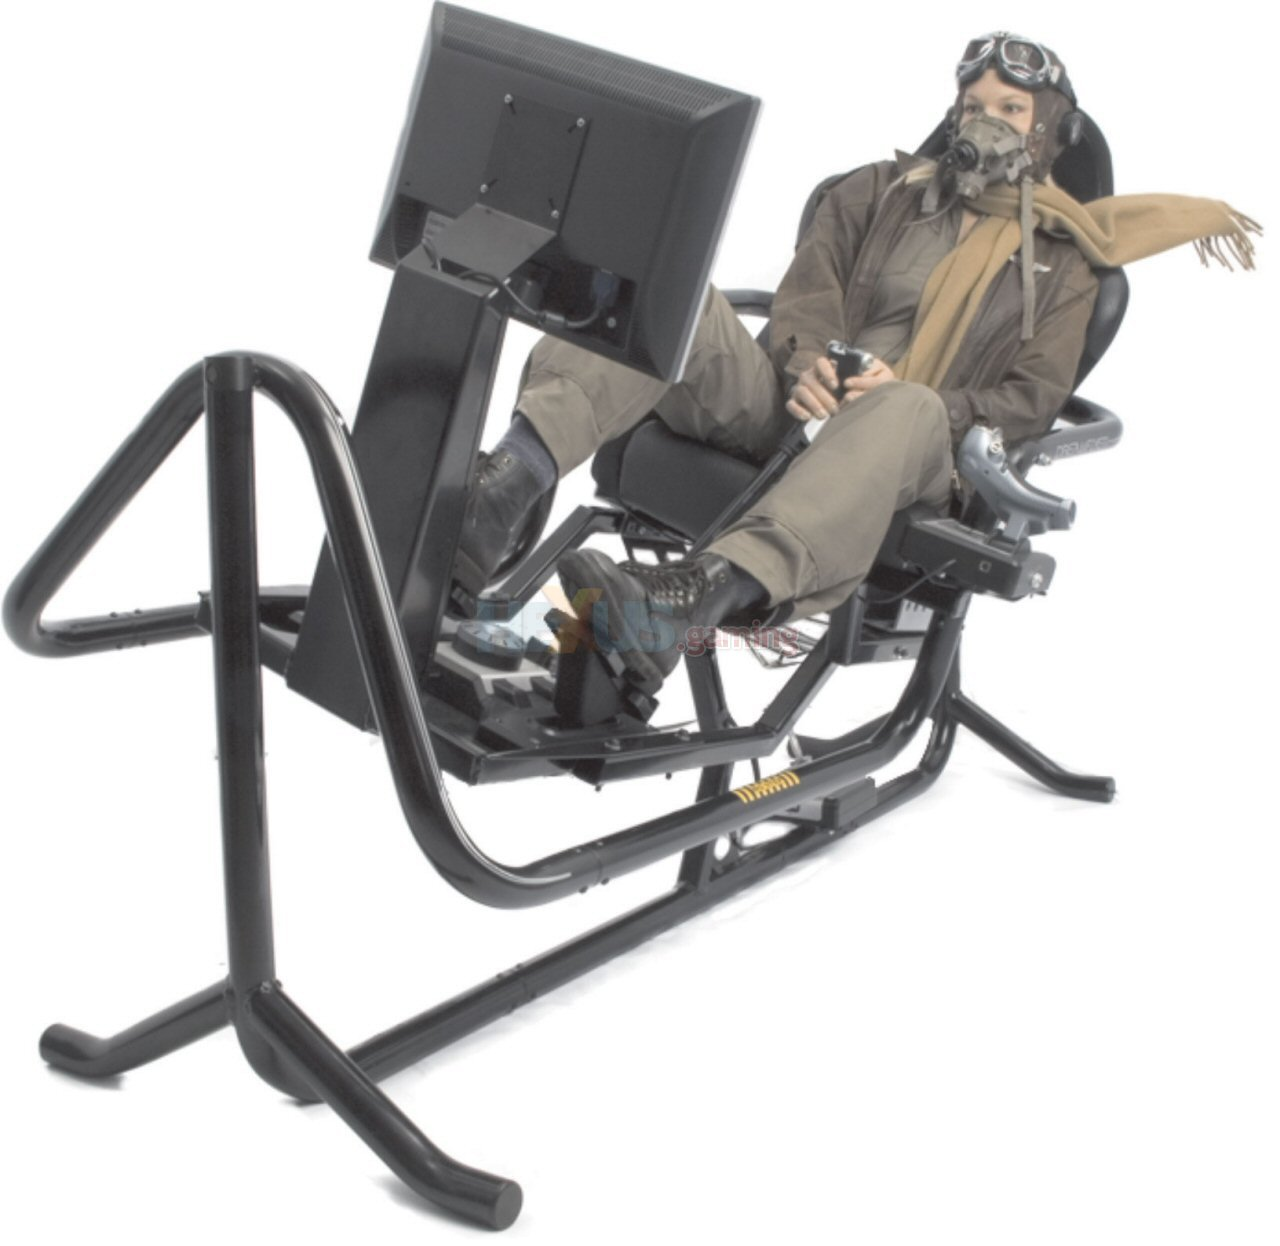 Flight Simulator Chair Motion Sickness In Your Living Room With Dreamflyer Pc